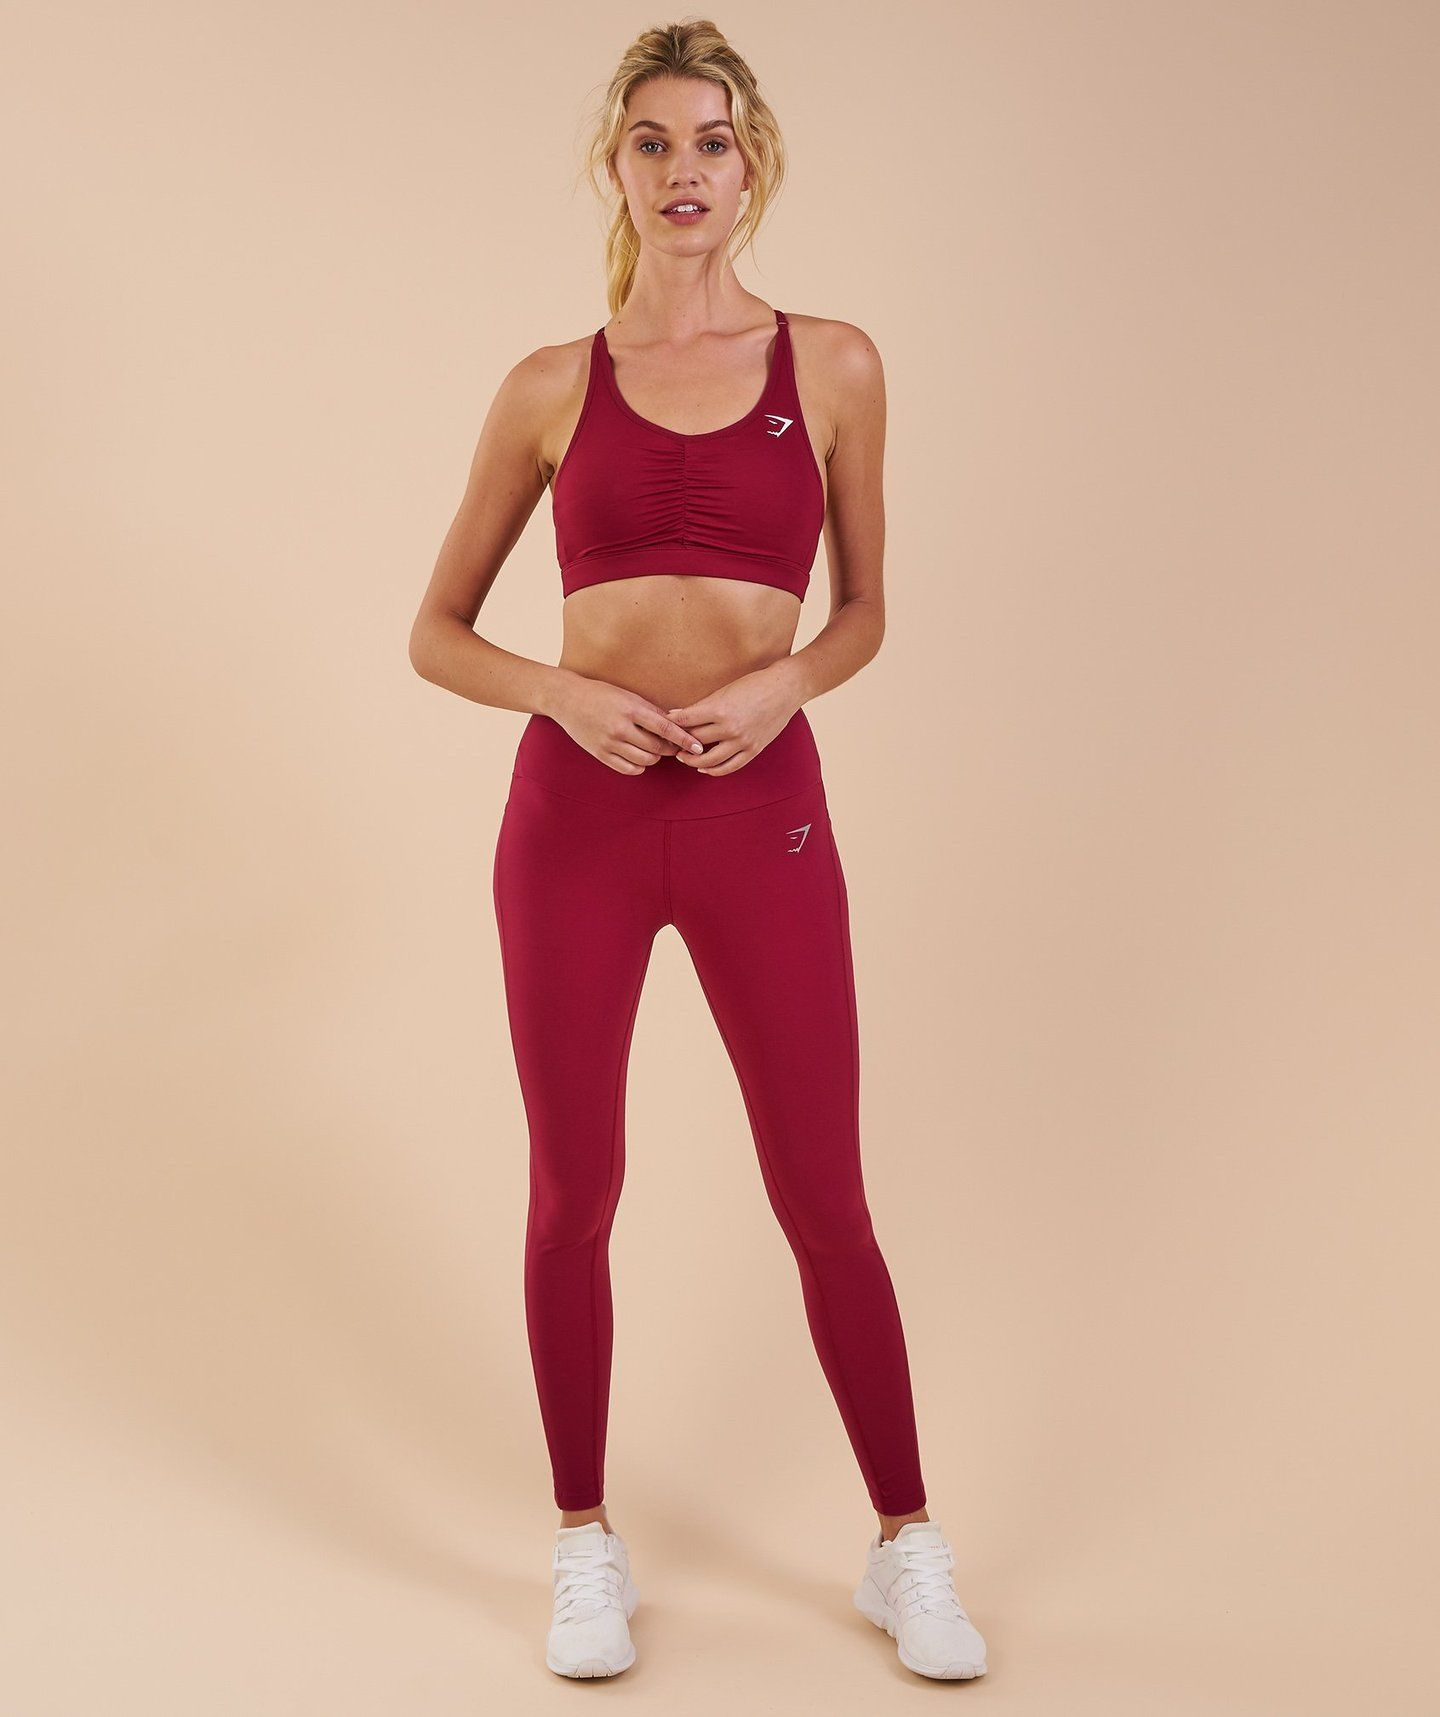 87e7ede1daee72 Gymshark Aspire Leggings - Beet 4 | Exercise outfits | Leggings ...